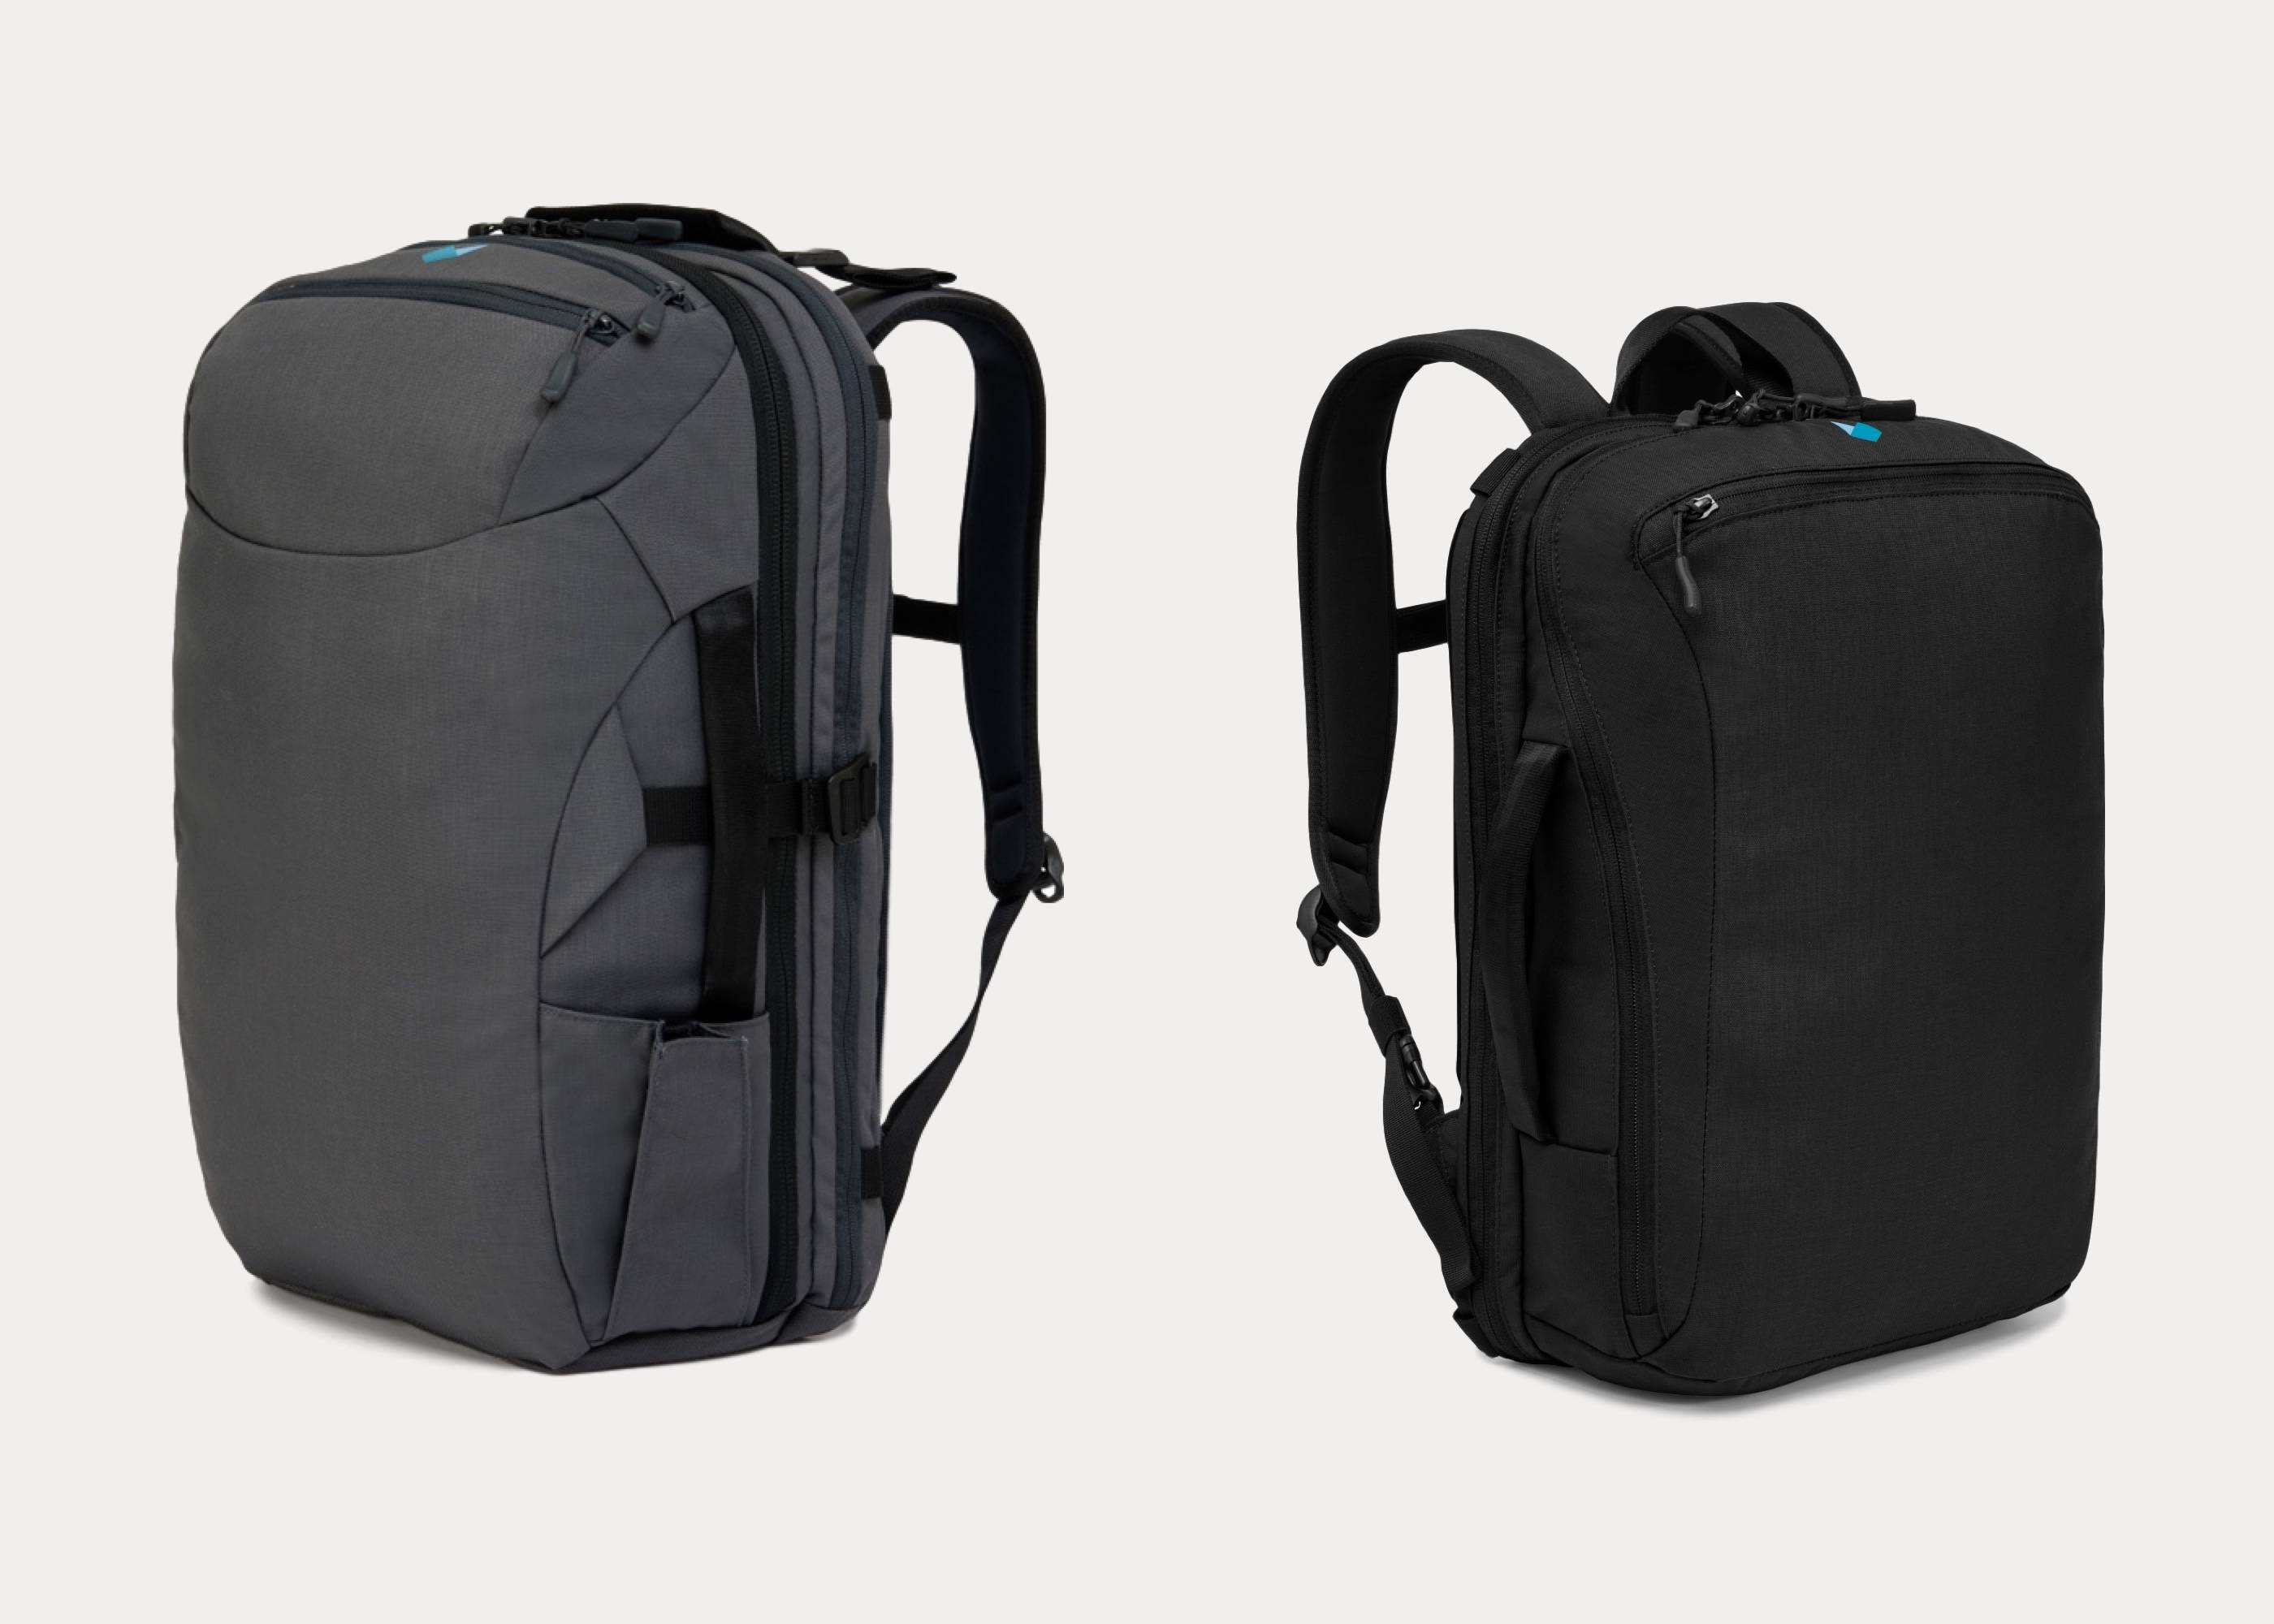 b1a0532c5542 Minaal - Bags & gear built for life on the move.